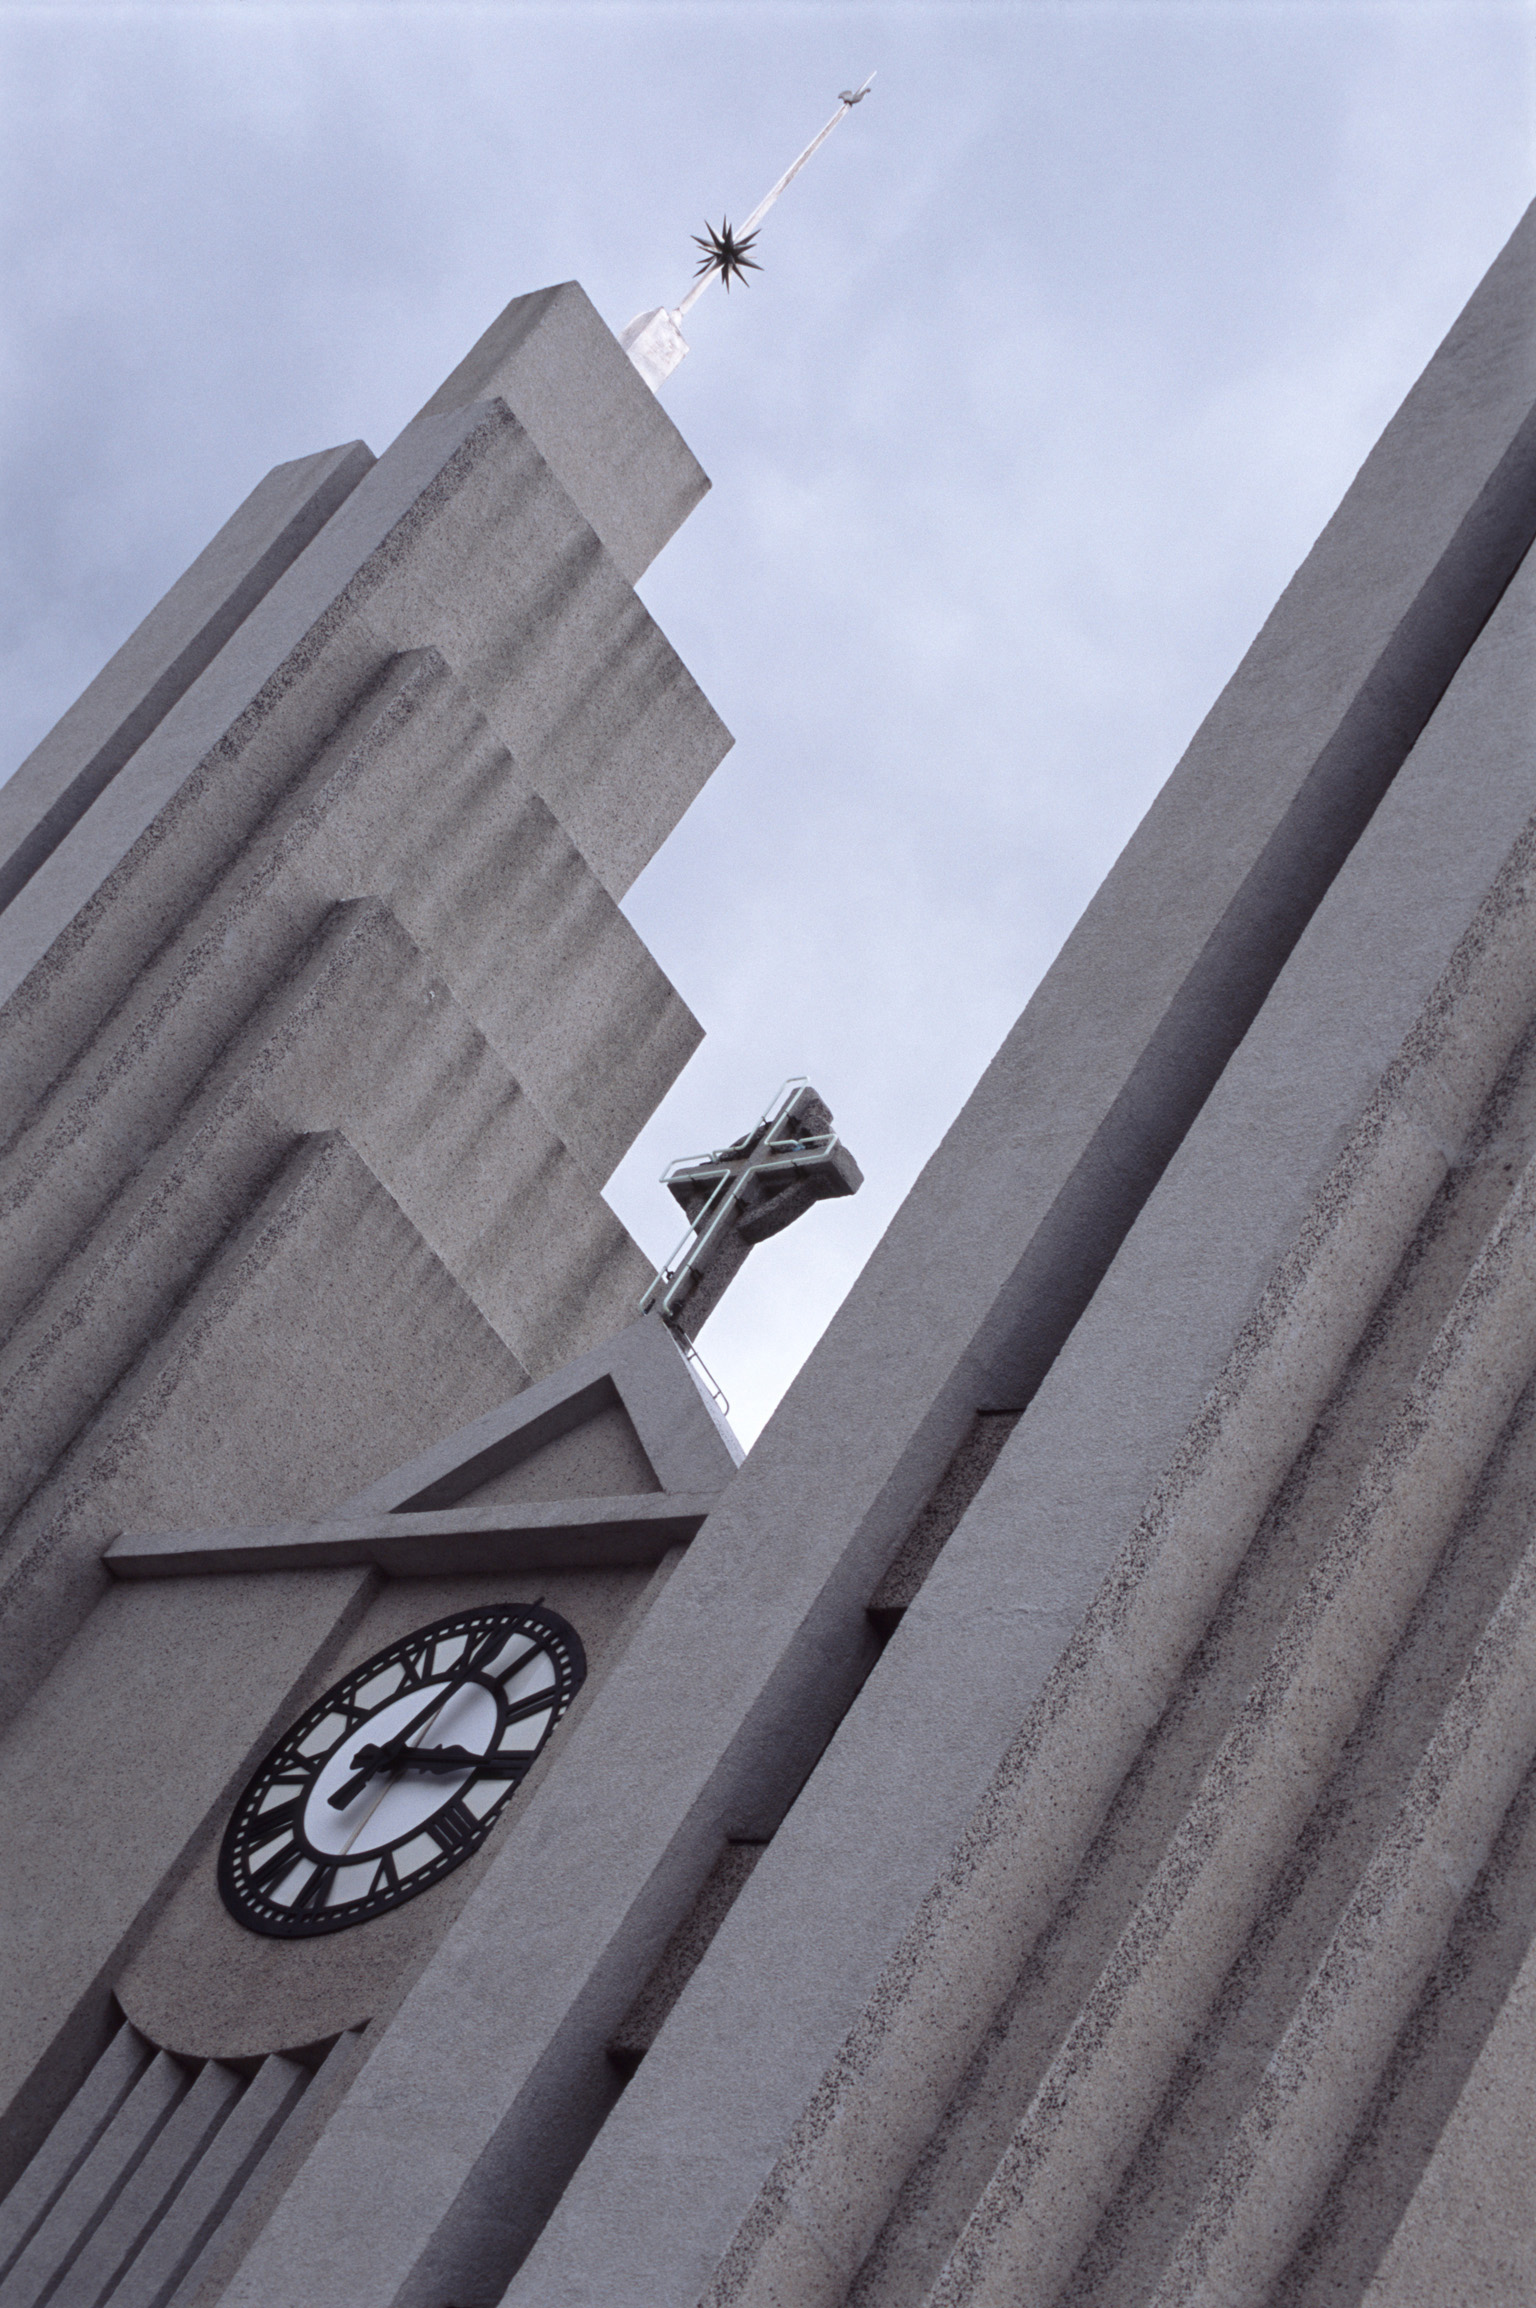 Close-up of the facade of the Lutheran Church of Akureyri, from Iceland, with a Christian cross mounted above the clock, concept of faith and time